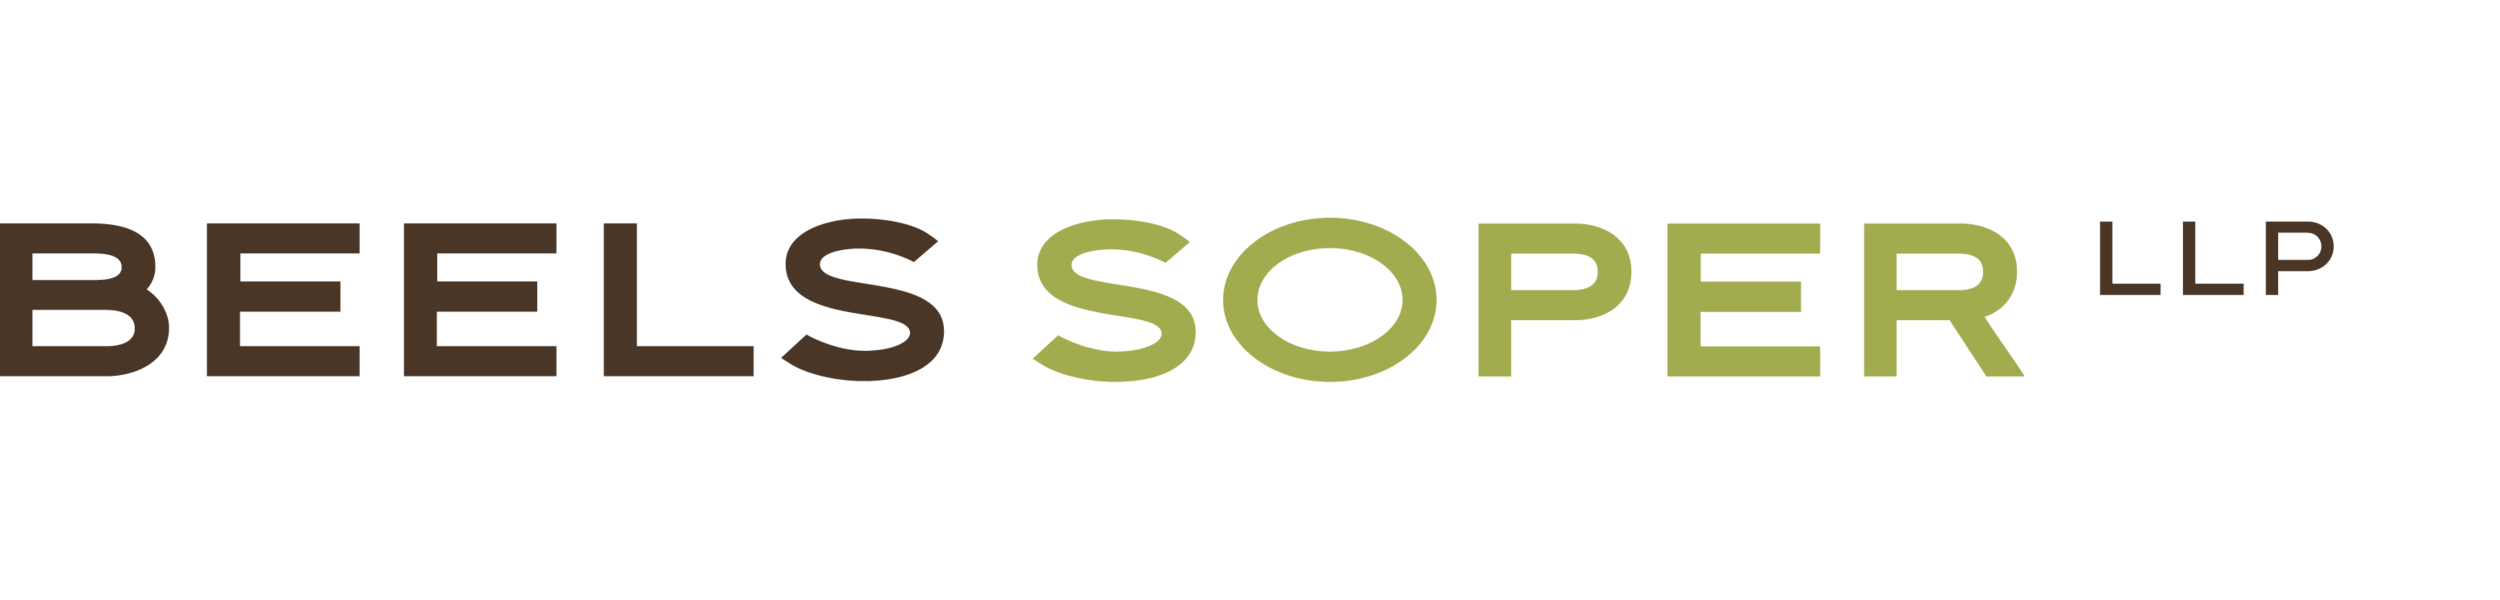 Beels-Soper-LLP_Logo_Main_B+G 10.13.30 AM copy.png